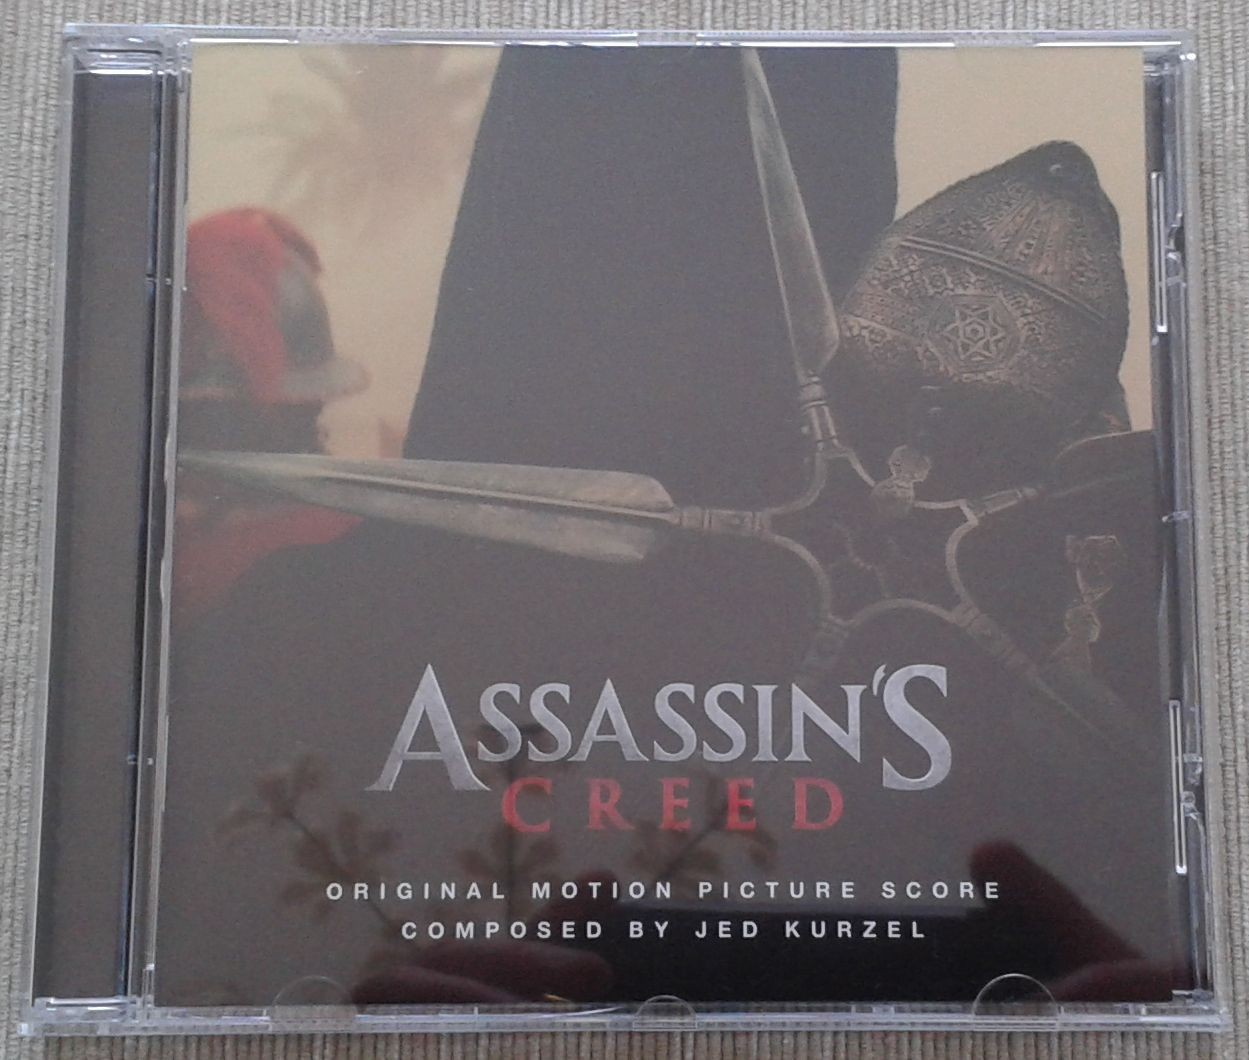 1. Assassins Creed front.jpg